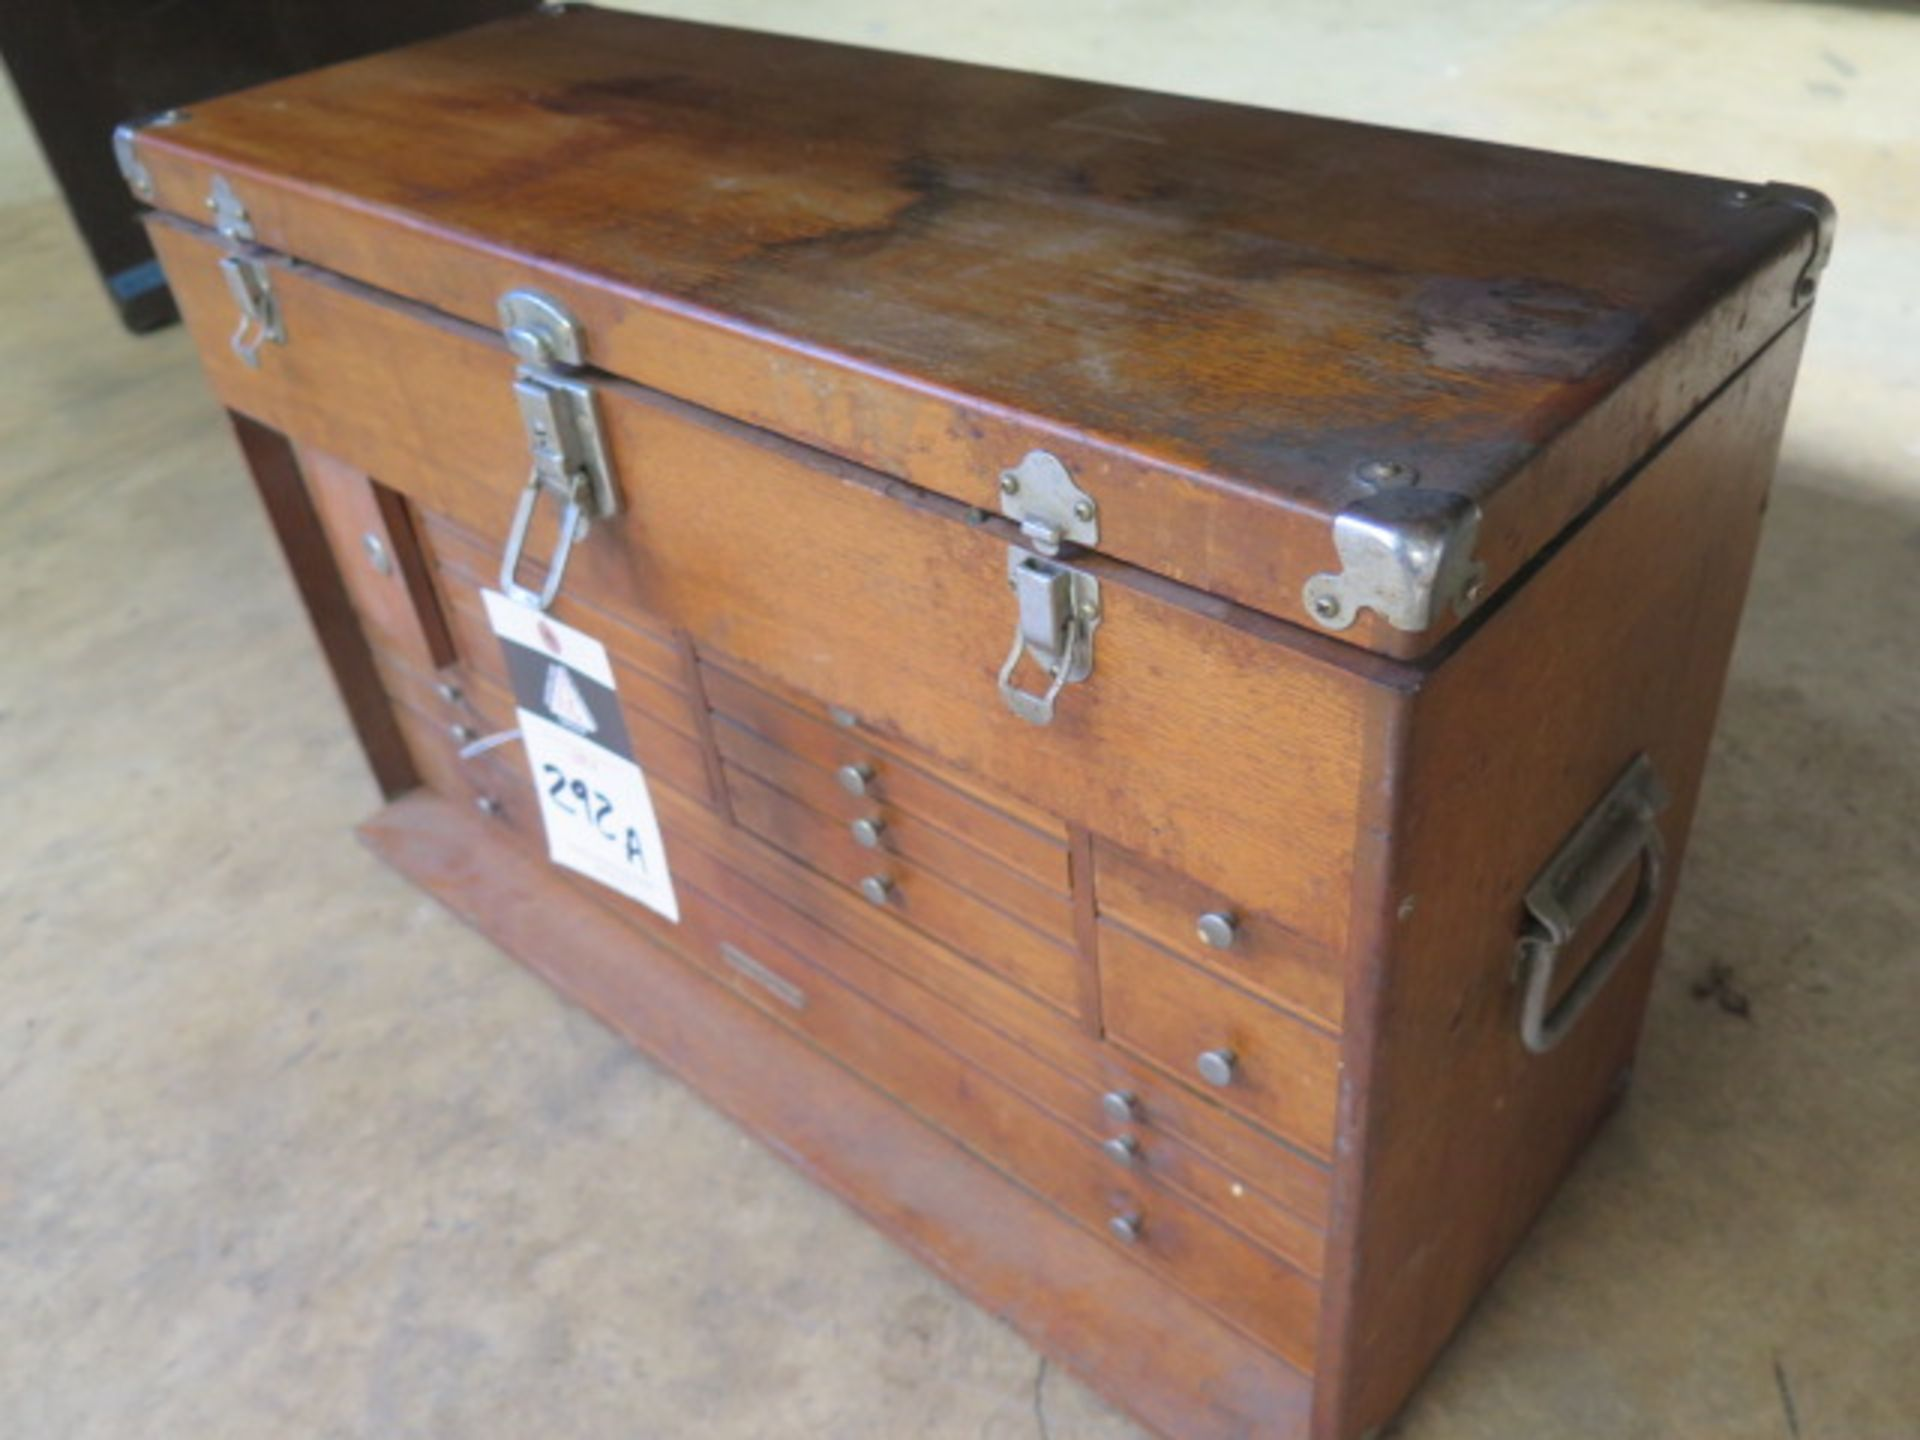 Machinists Tool Box (SOLD AS-IS - NO WARRANTY) - Image 2 of 5